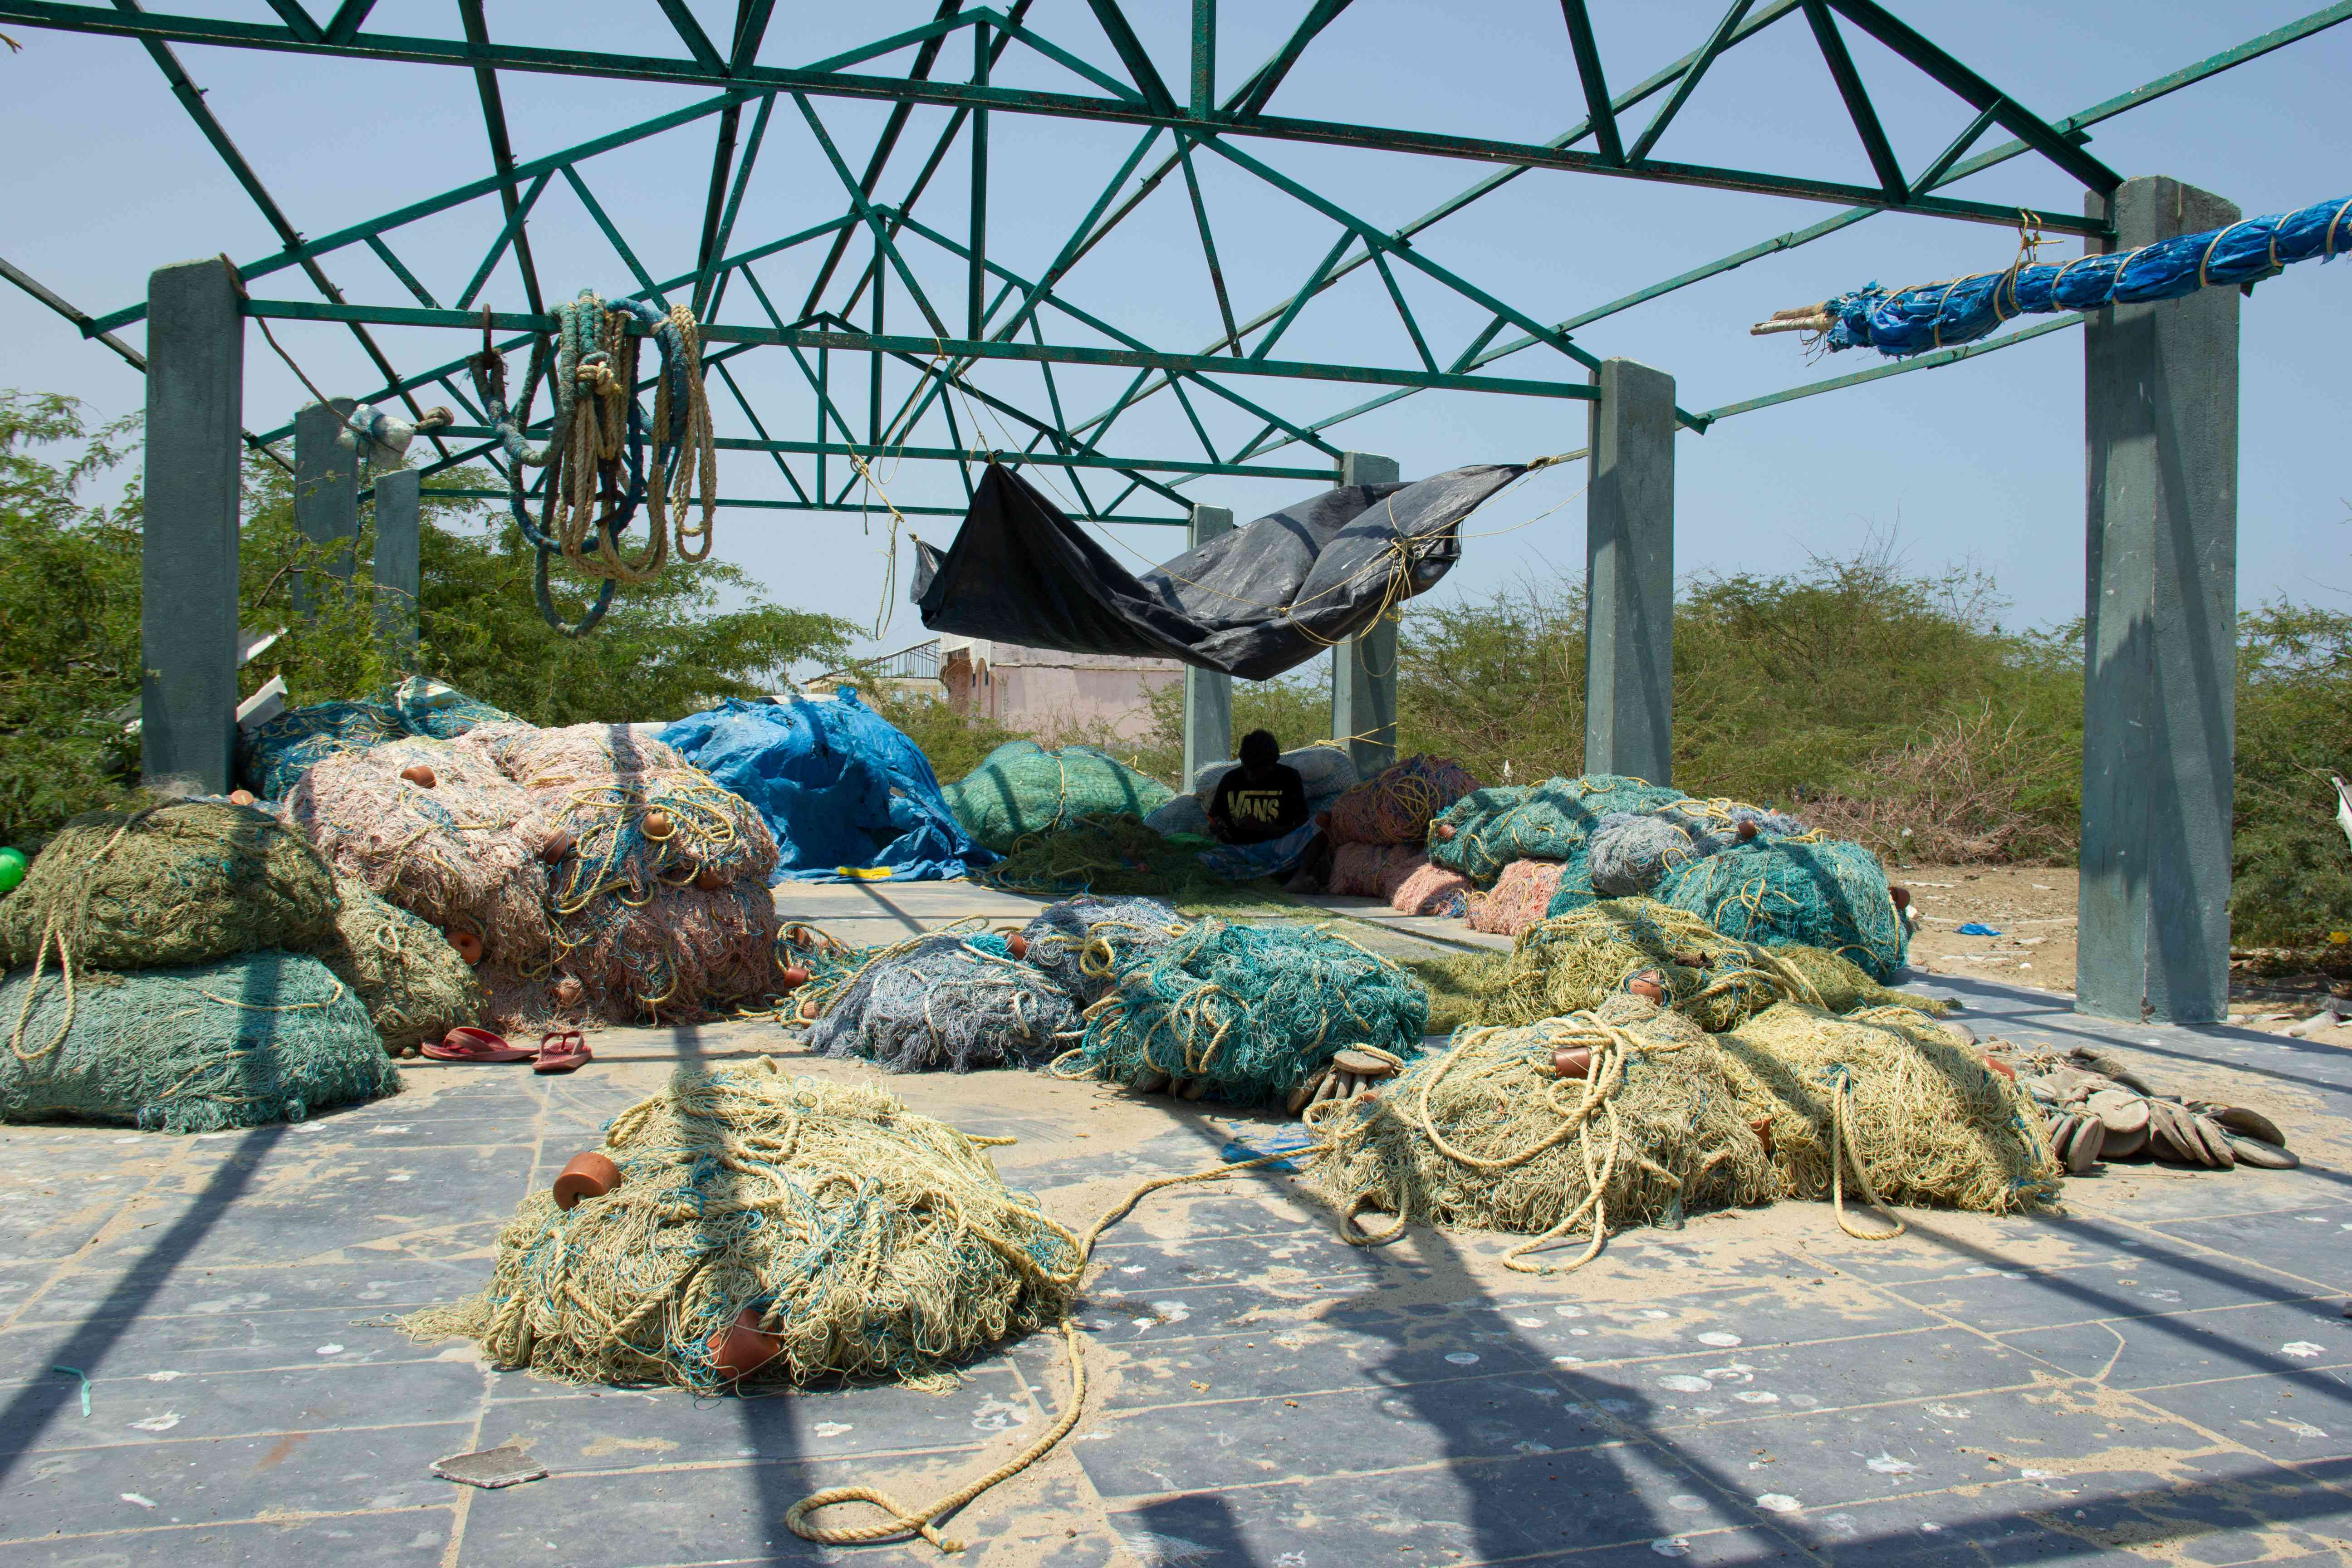 A fisherman sews fishing net in a shed that was damaged during cyclone Gaja. Photo Credit: M Palanikumar|Pepcollective